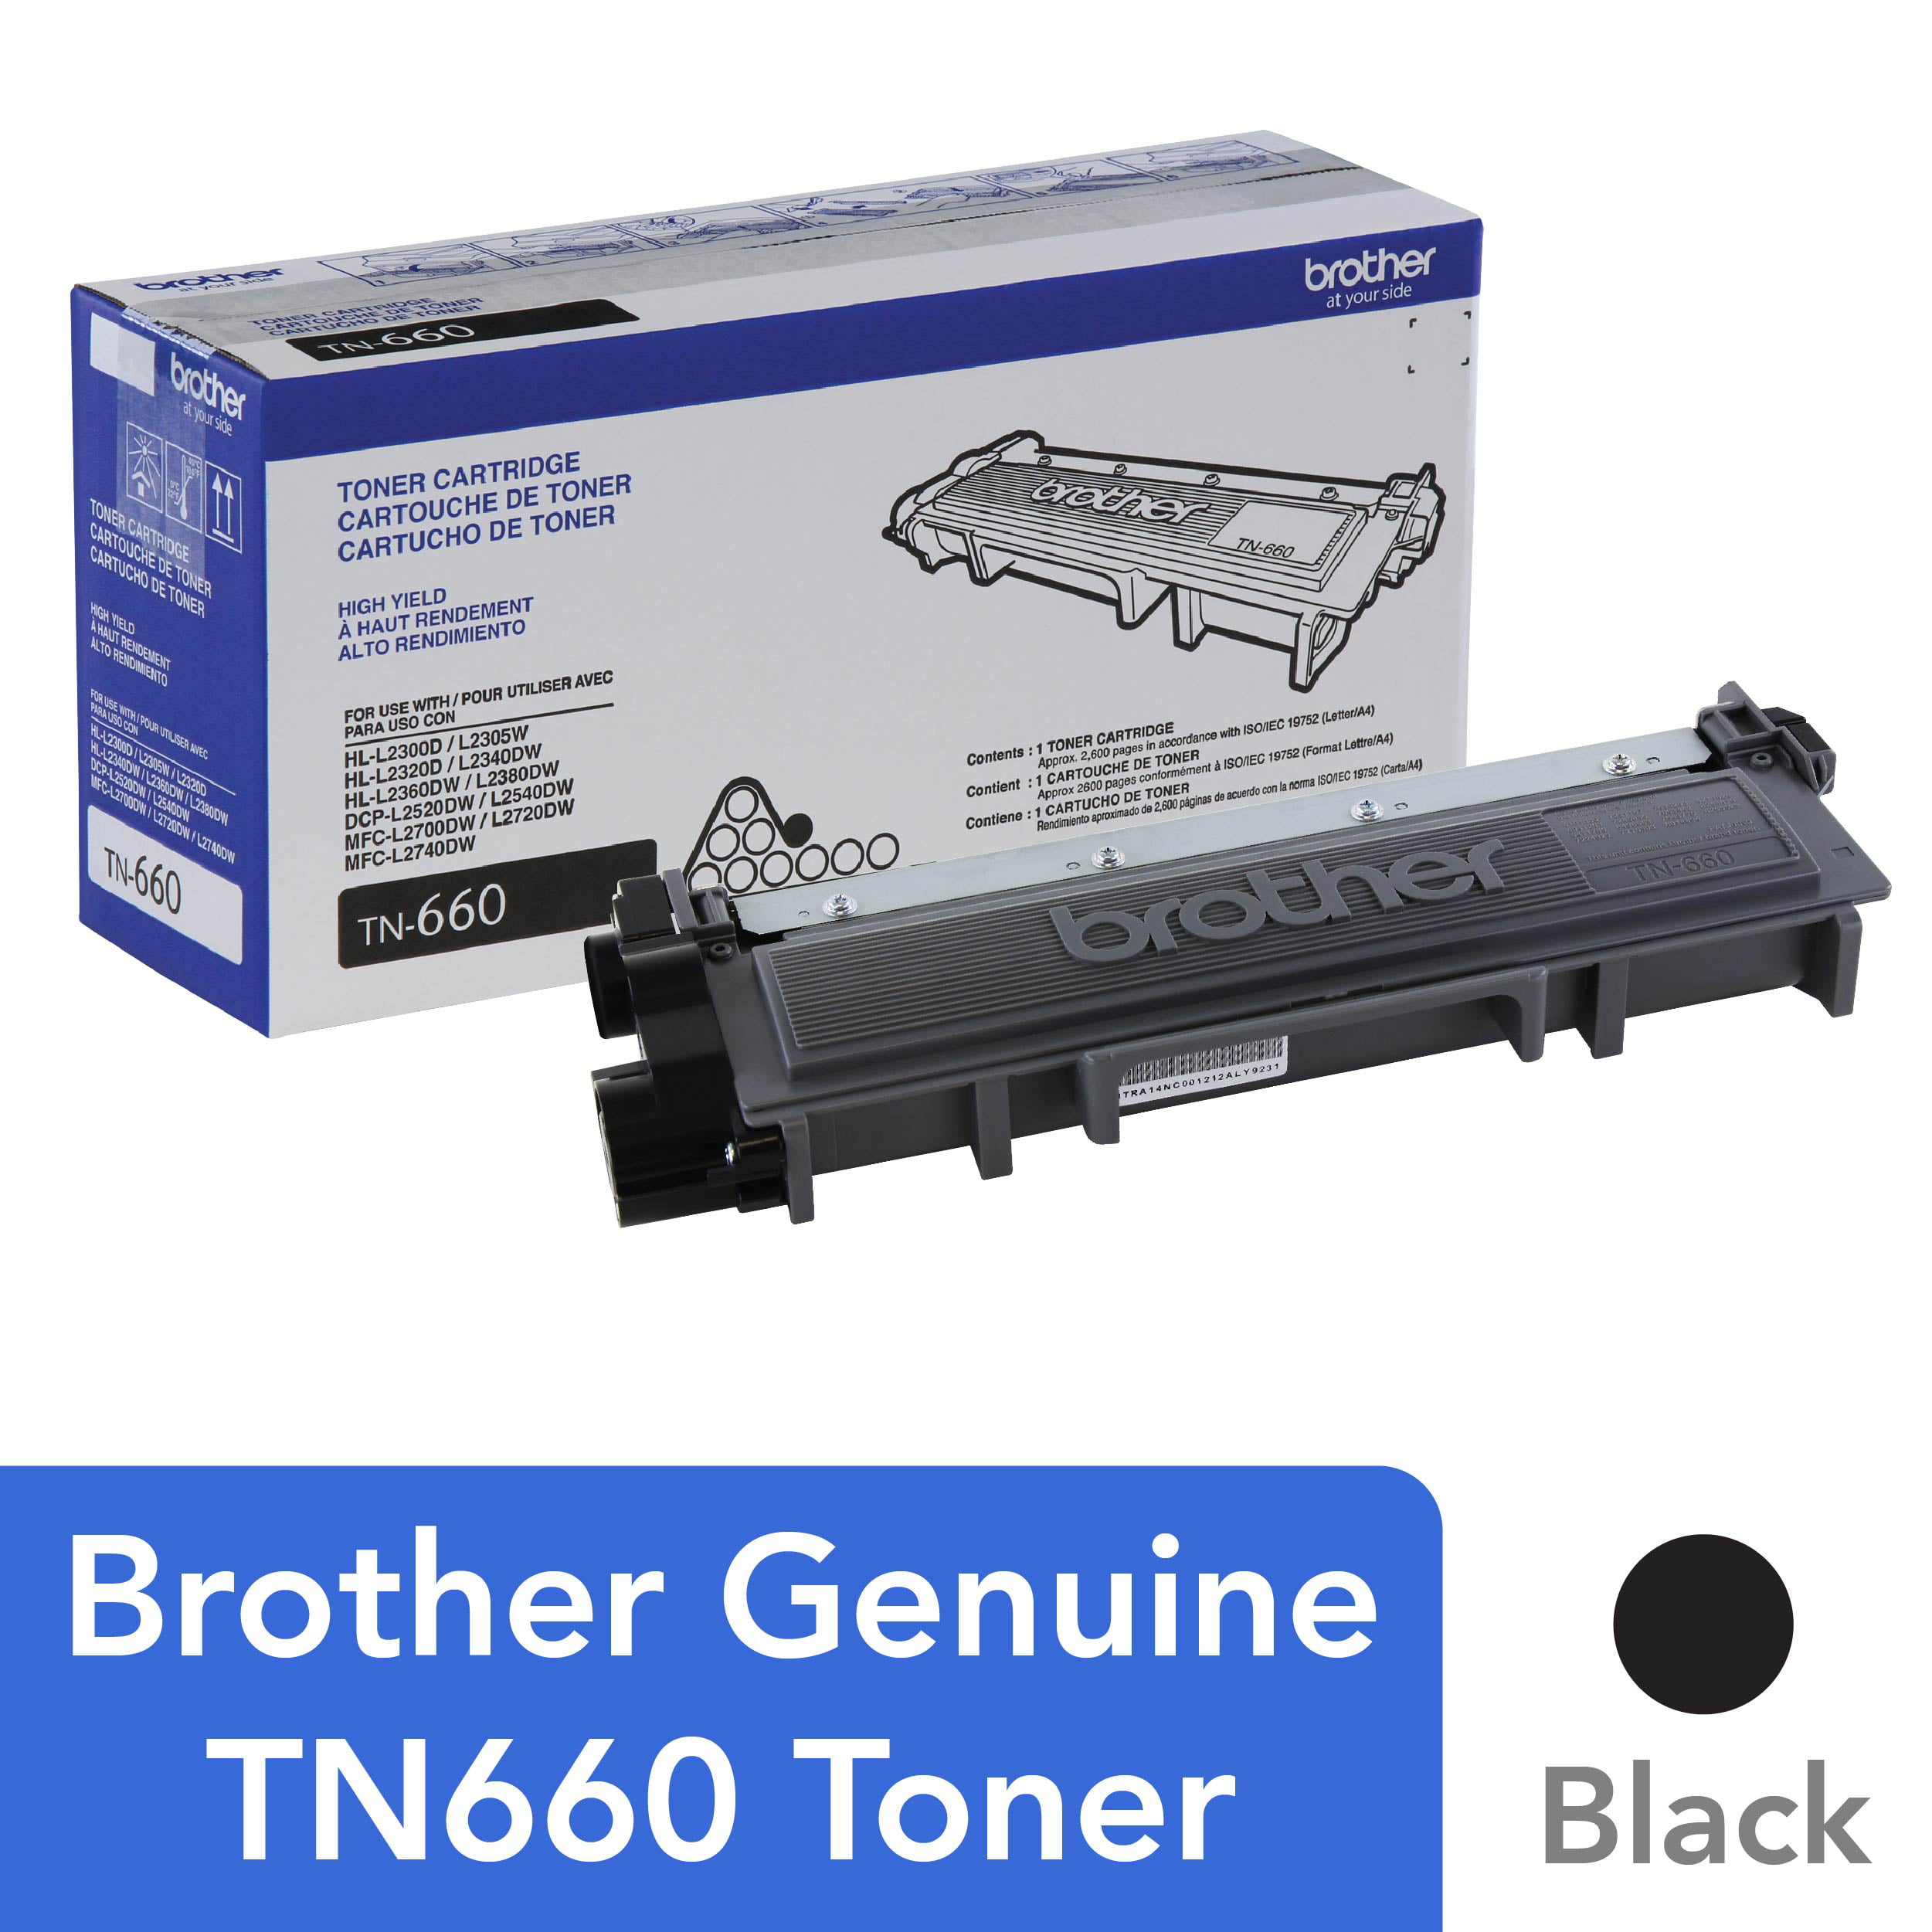 1 DR630 Drum for Brother DR660 MFC-L2720DW MFCL2740DW High Yield 5 TN660 Toner